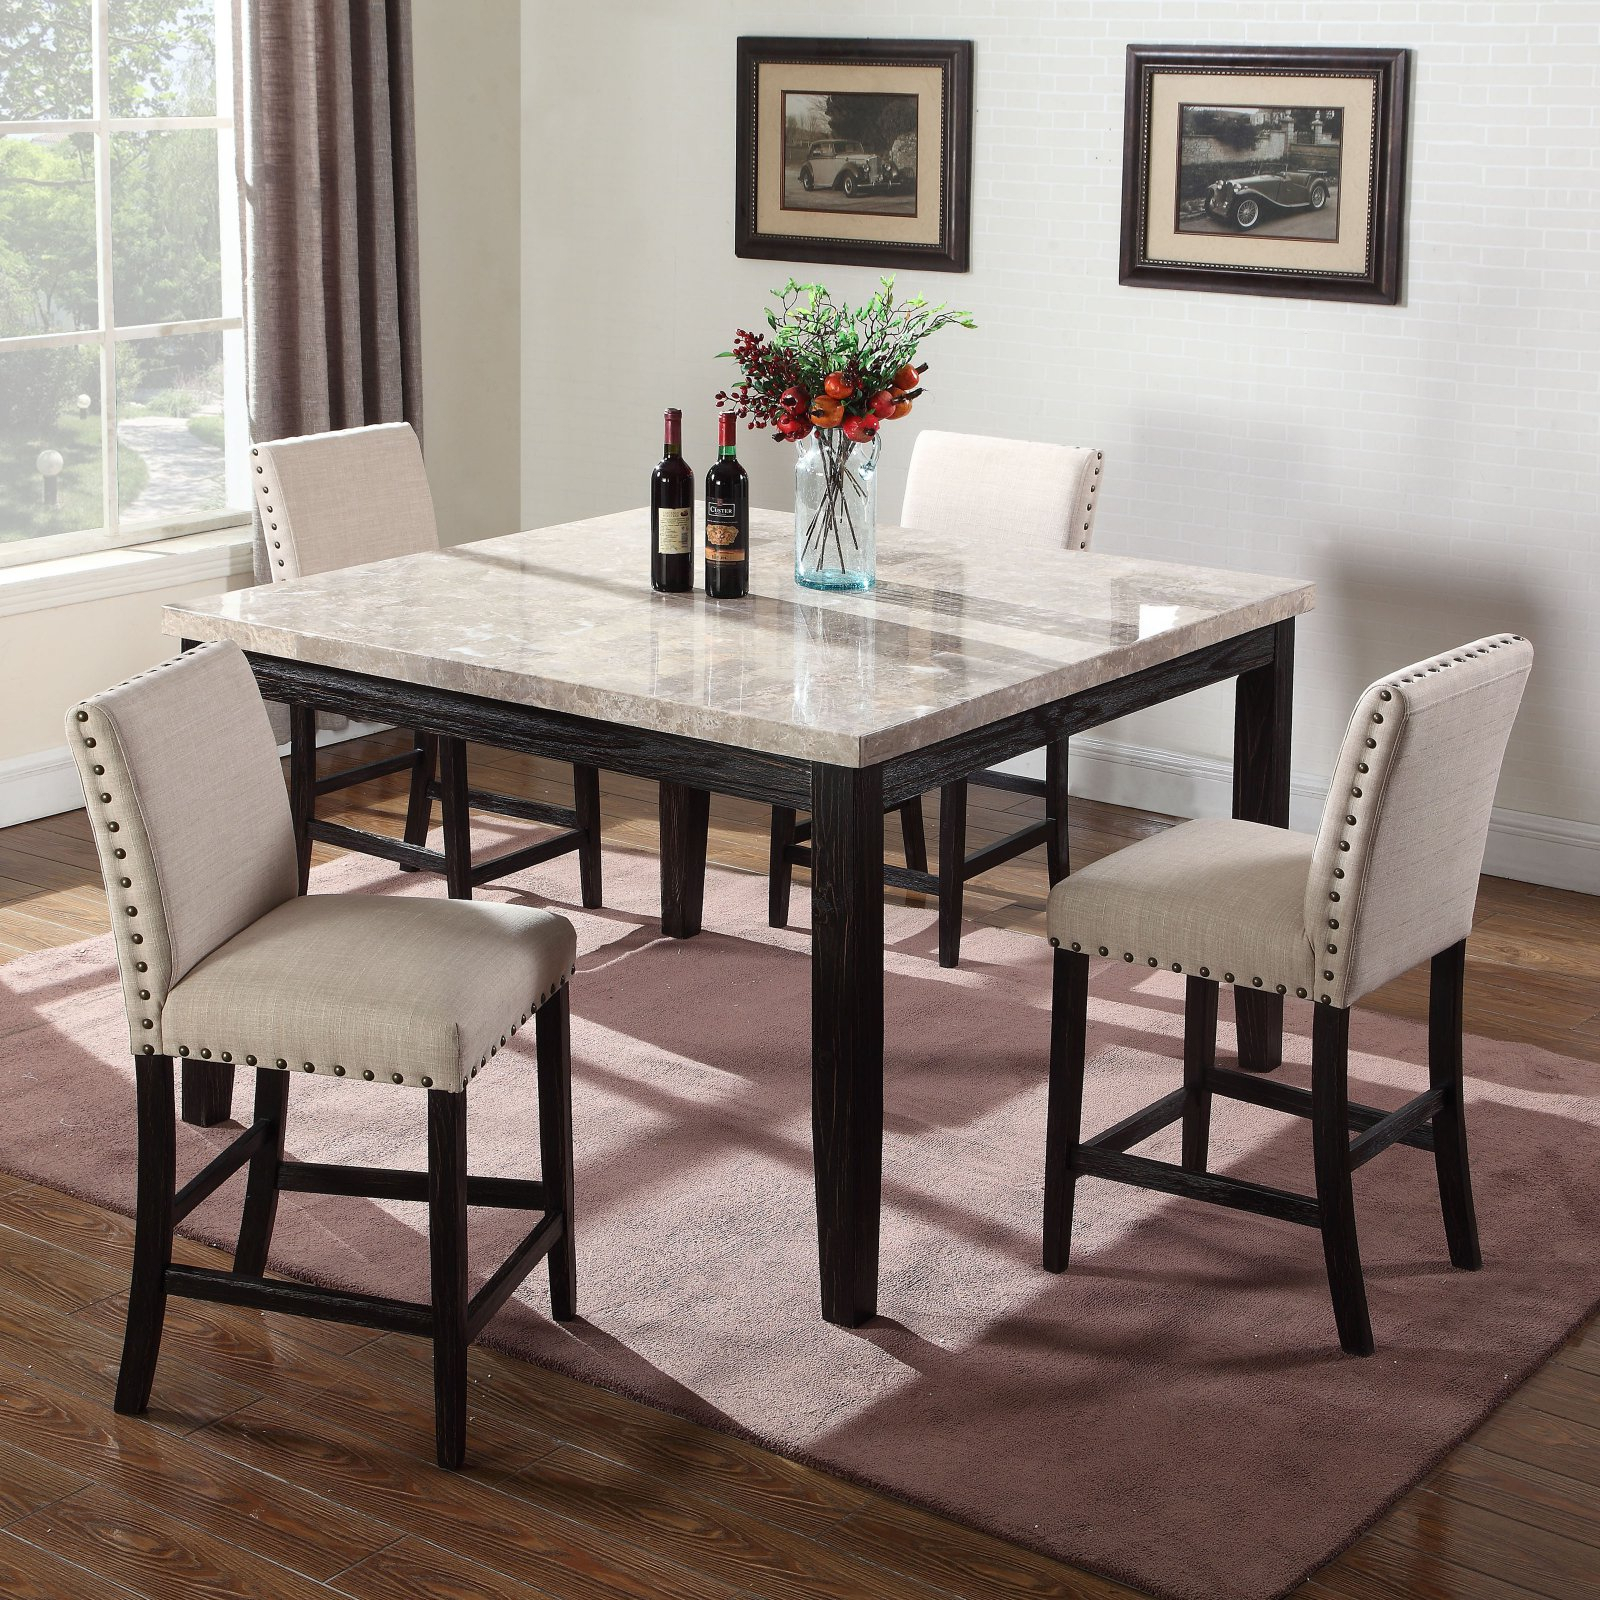 Best Master Furniture Celeste Square 5 Piece Faux Marble Counter Within Newest Bryson 5 Piece Dining Sets (Image 2 of 20)